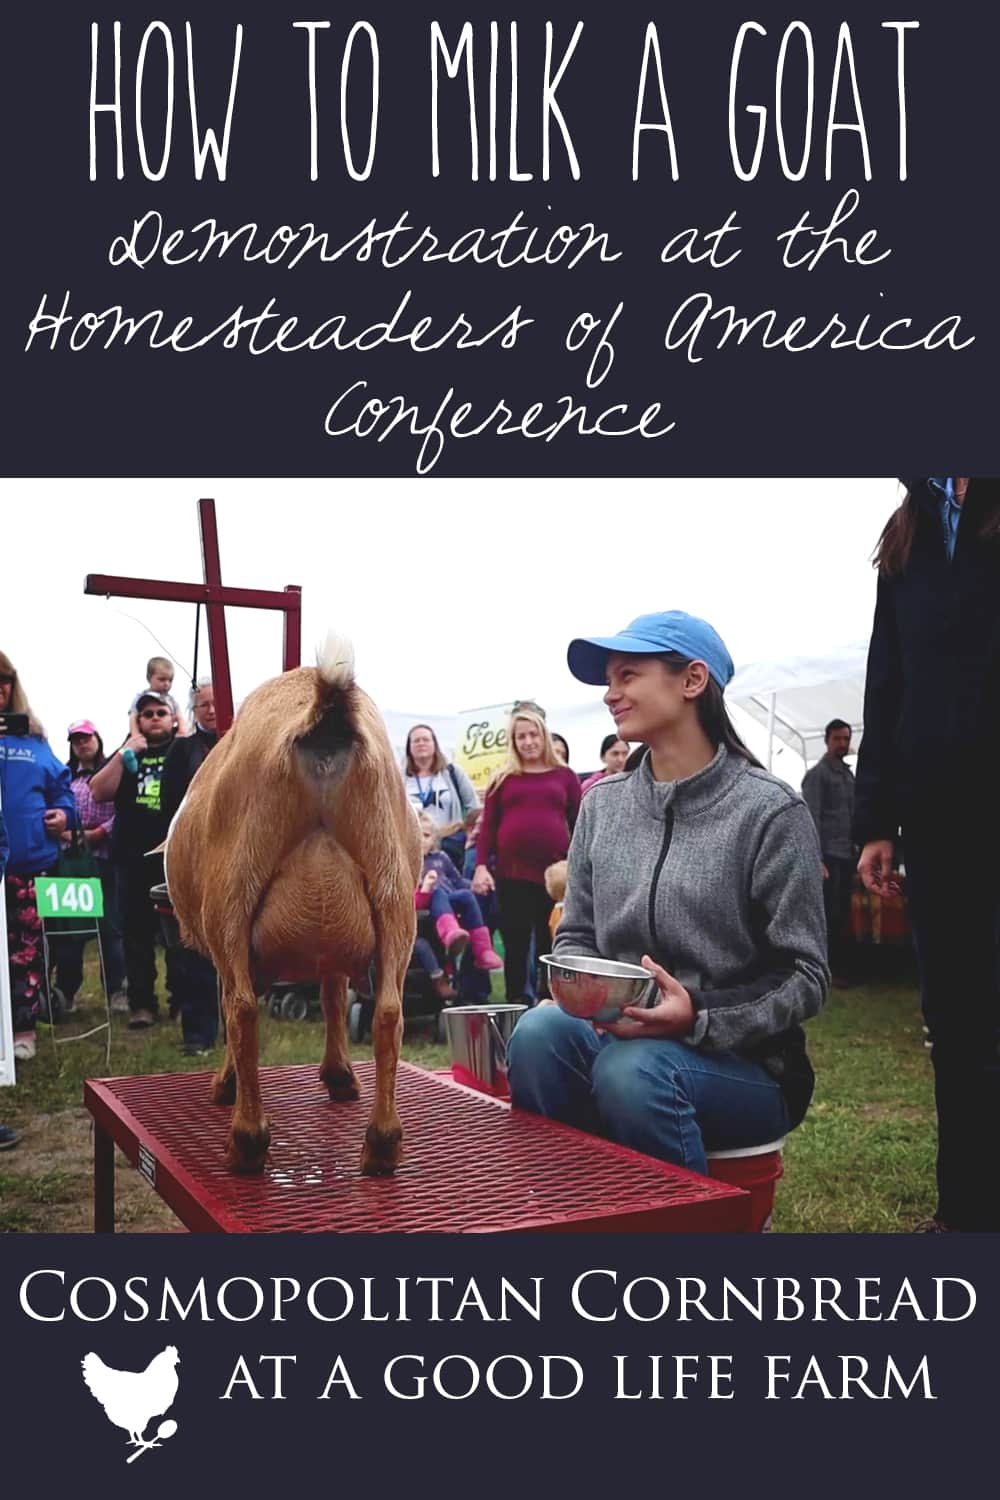 How to Milk a Goat - This goat milking demonstration was put on by Dawson Gap Farm at the 2019 Homesteaders of America Conference.